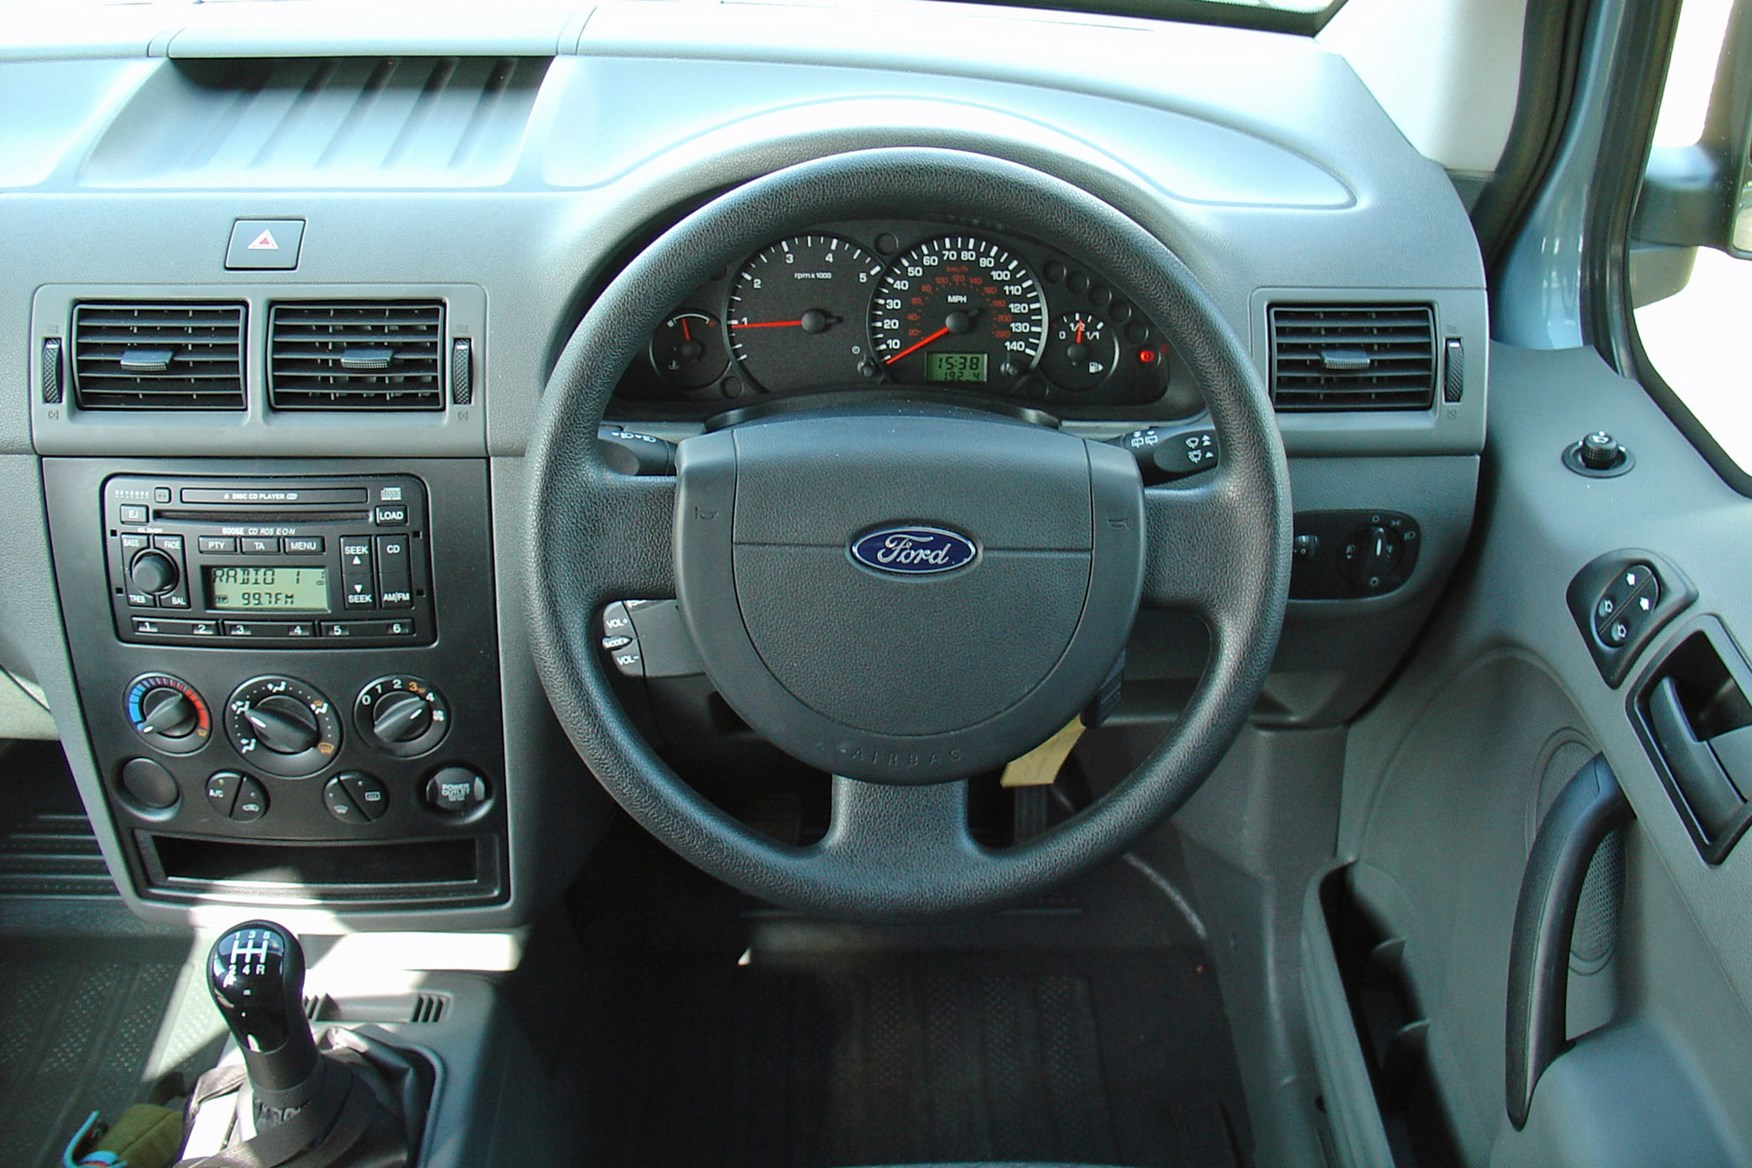 Ford Transit Connect van review (2002-2013) | Parkers